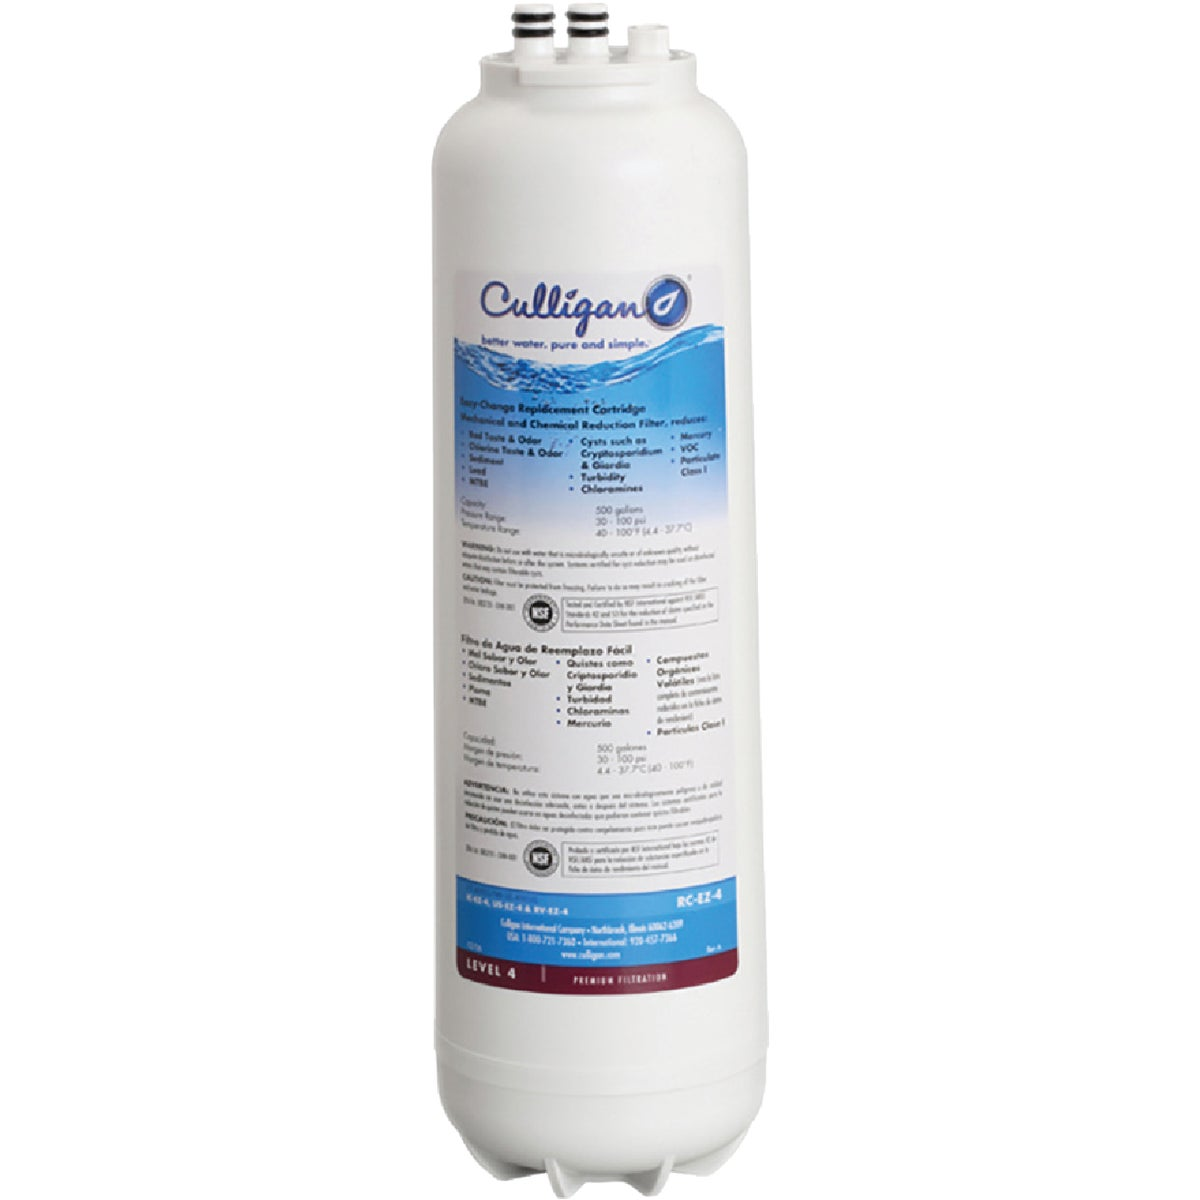 Culligan REPLACEMENT CARTRIDGE RC-EZ-4